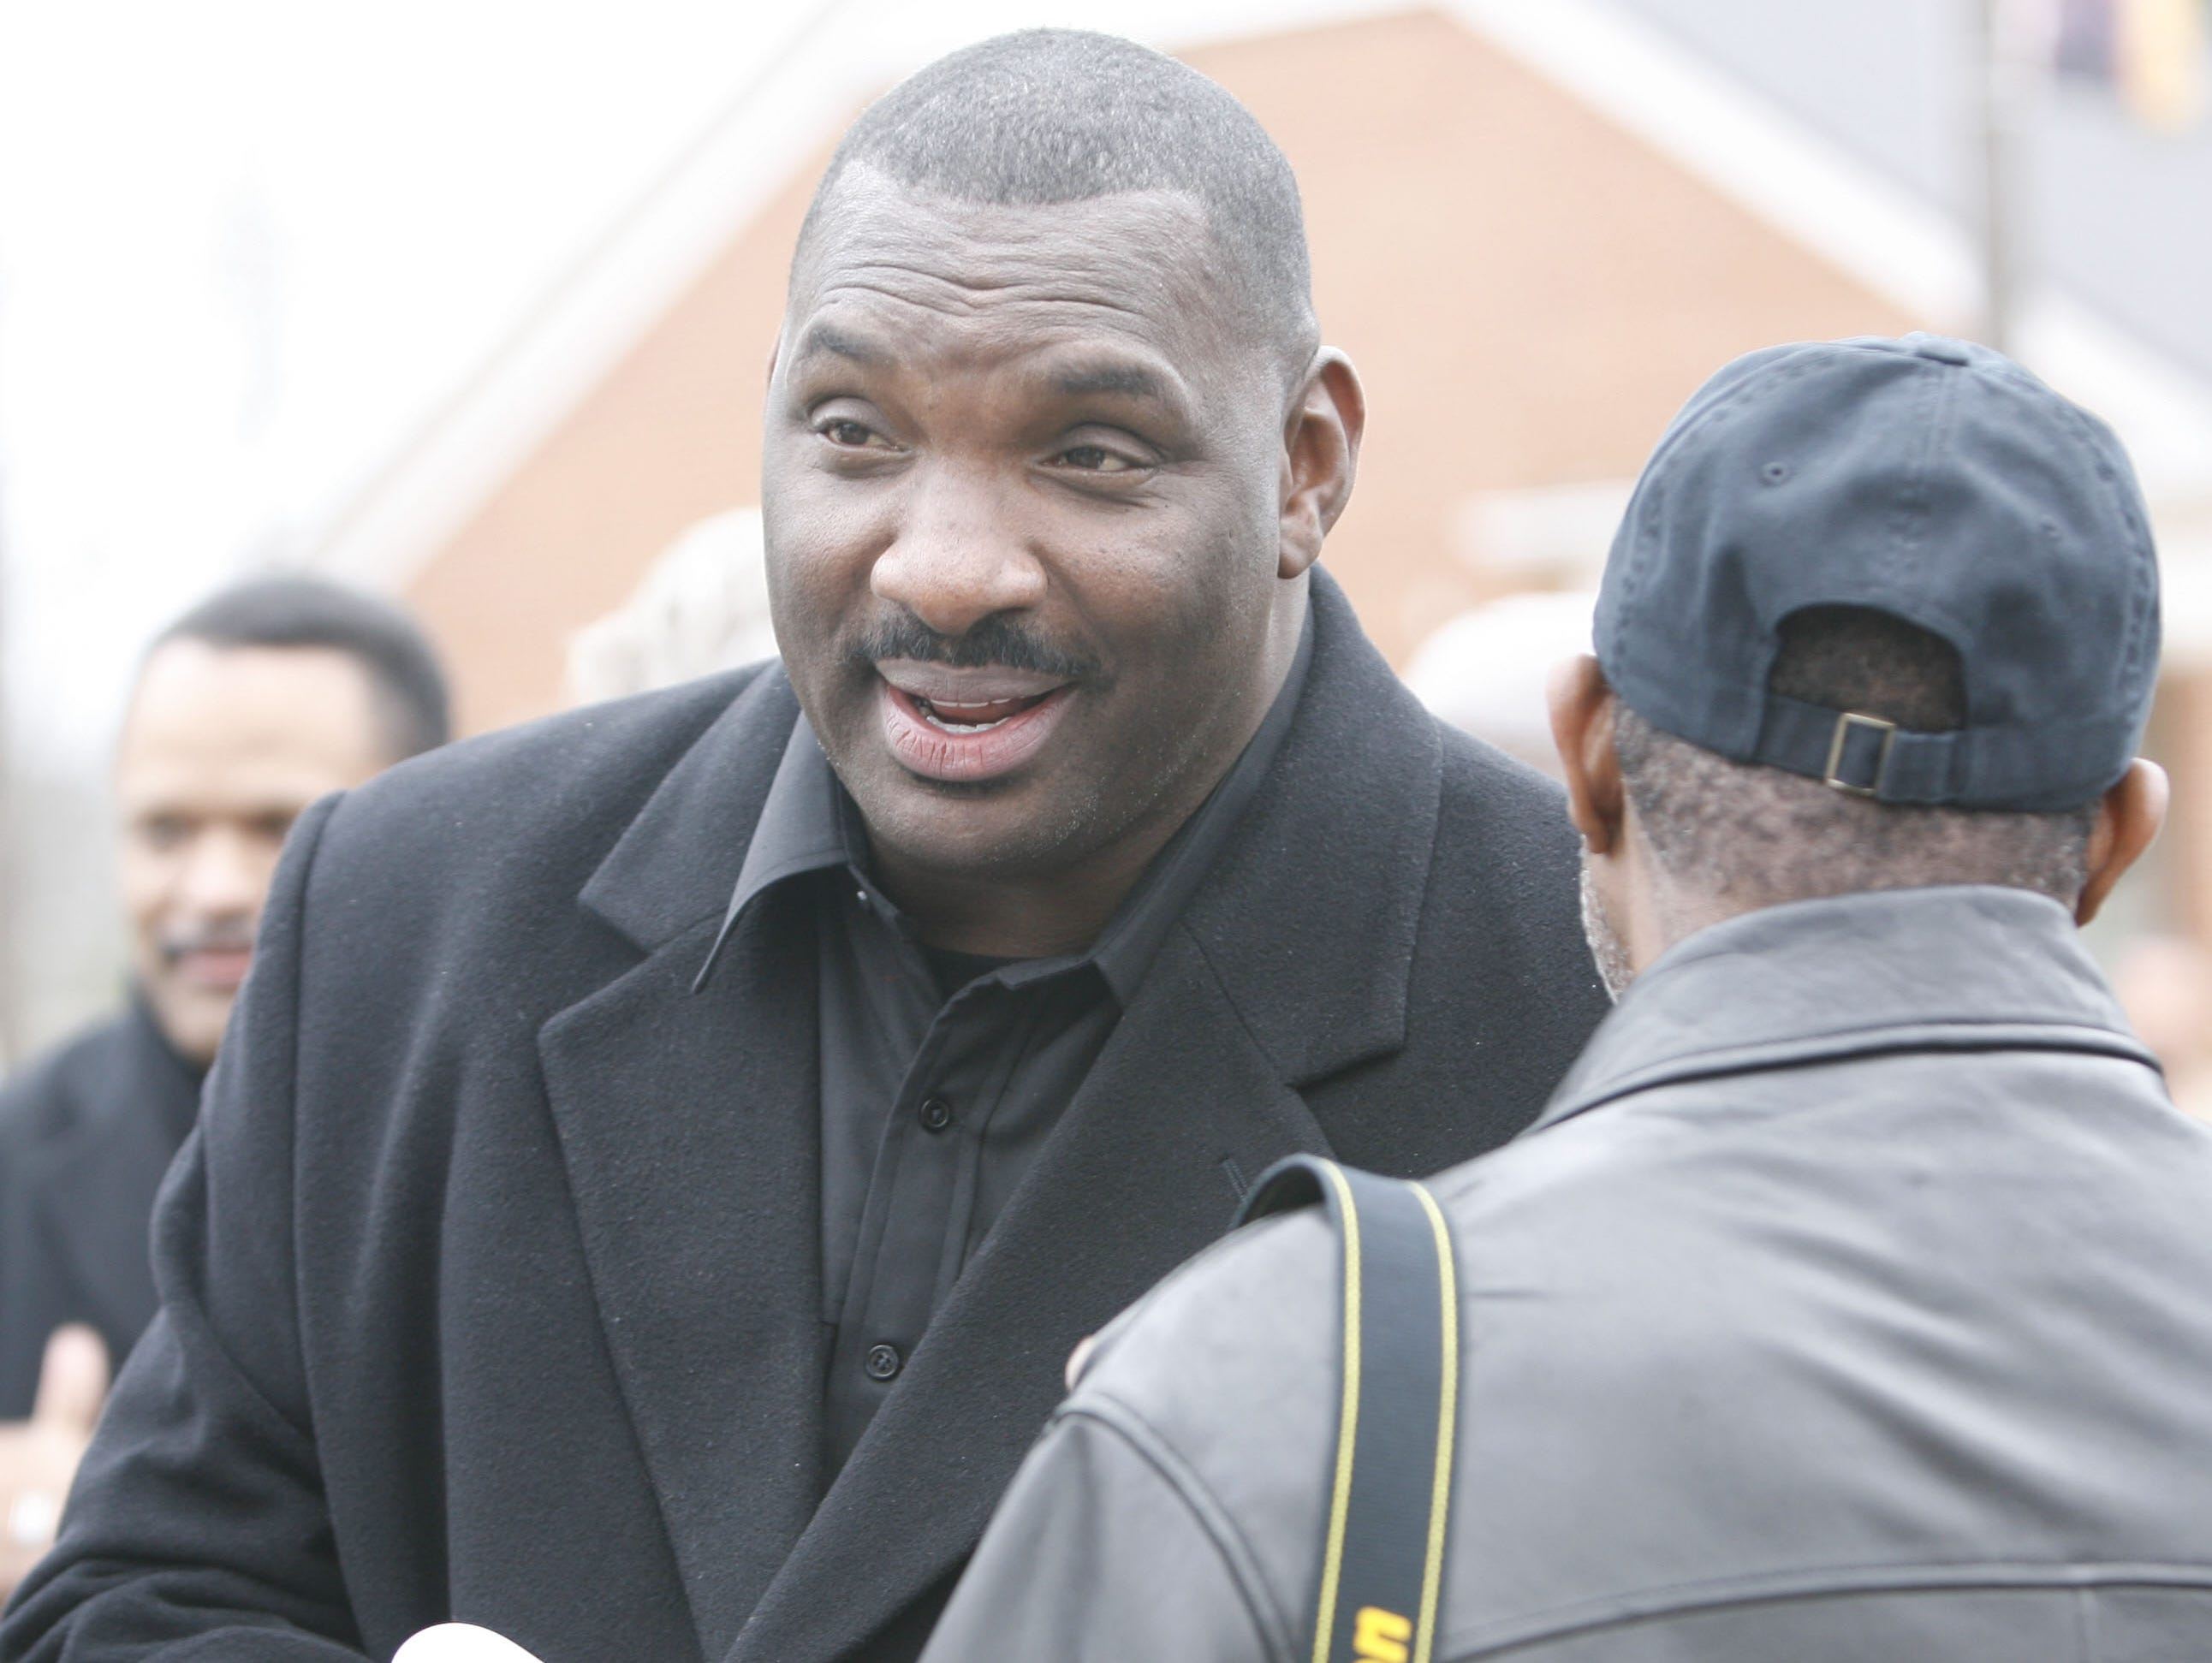 Former GSU football coach Doug Williams attends the ceremony. Louisiana dedicates the Eddie G. Robinson Museum at Grambling State University on Saturday, Feb. 13, 2010.